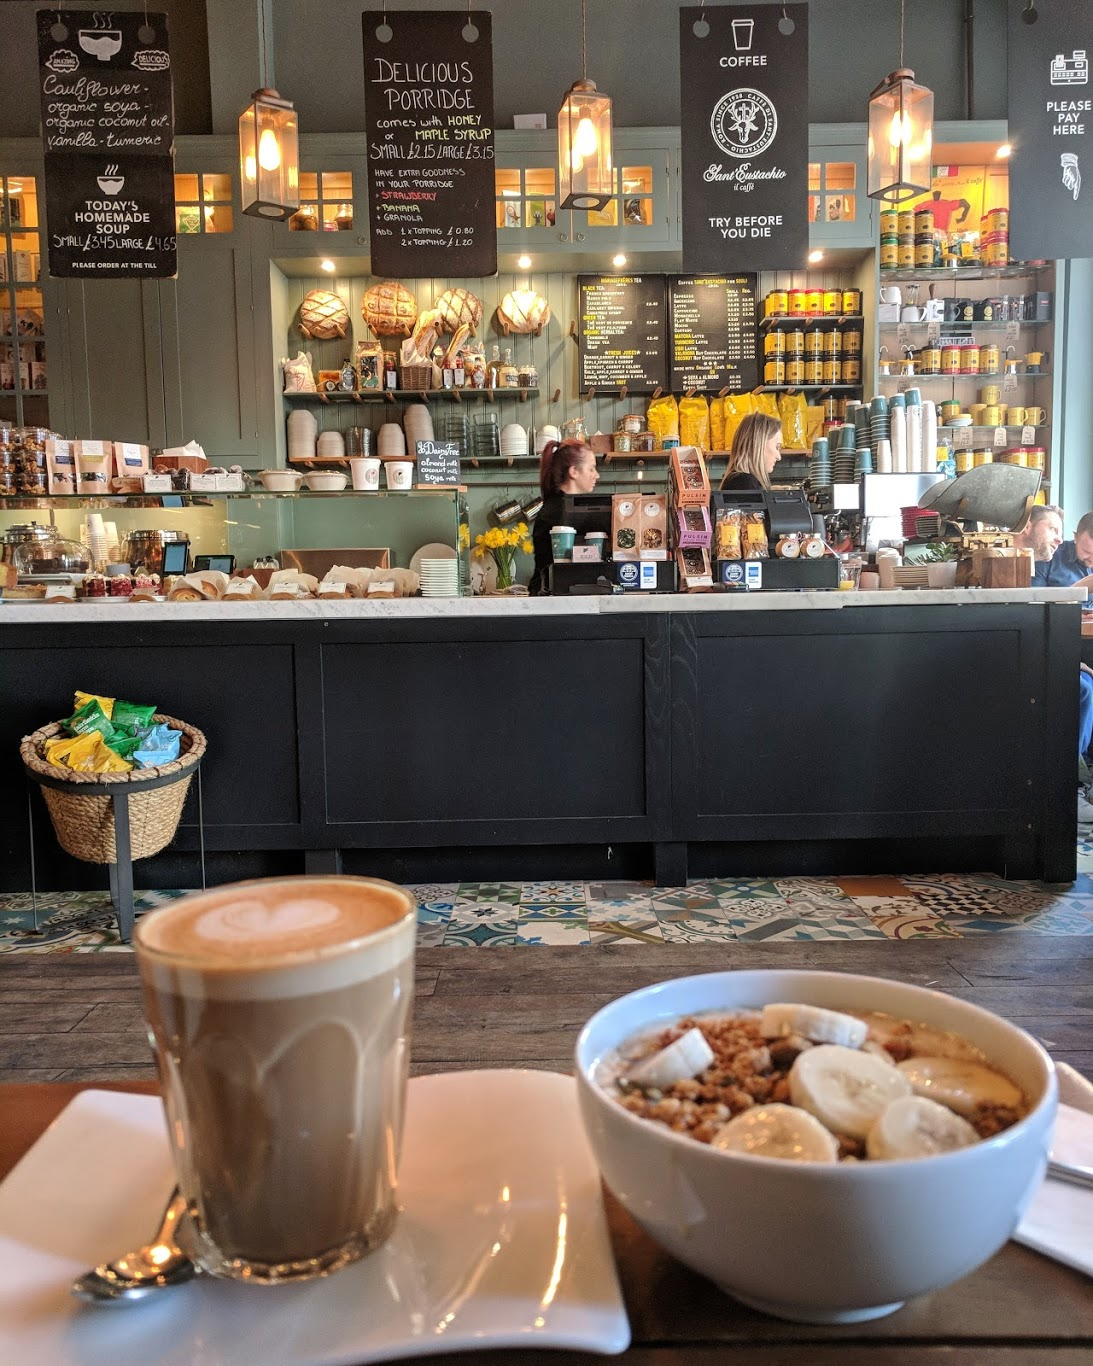 London - 1. Prufrock Coffee2. The Monocle Cafe3. Climpson & Sons CafeFull London list here.